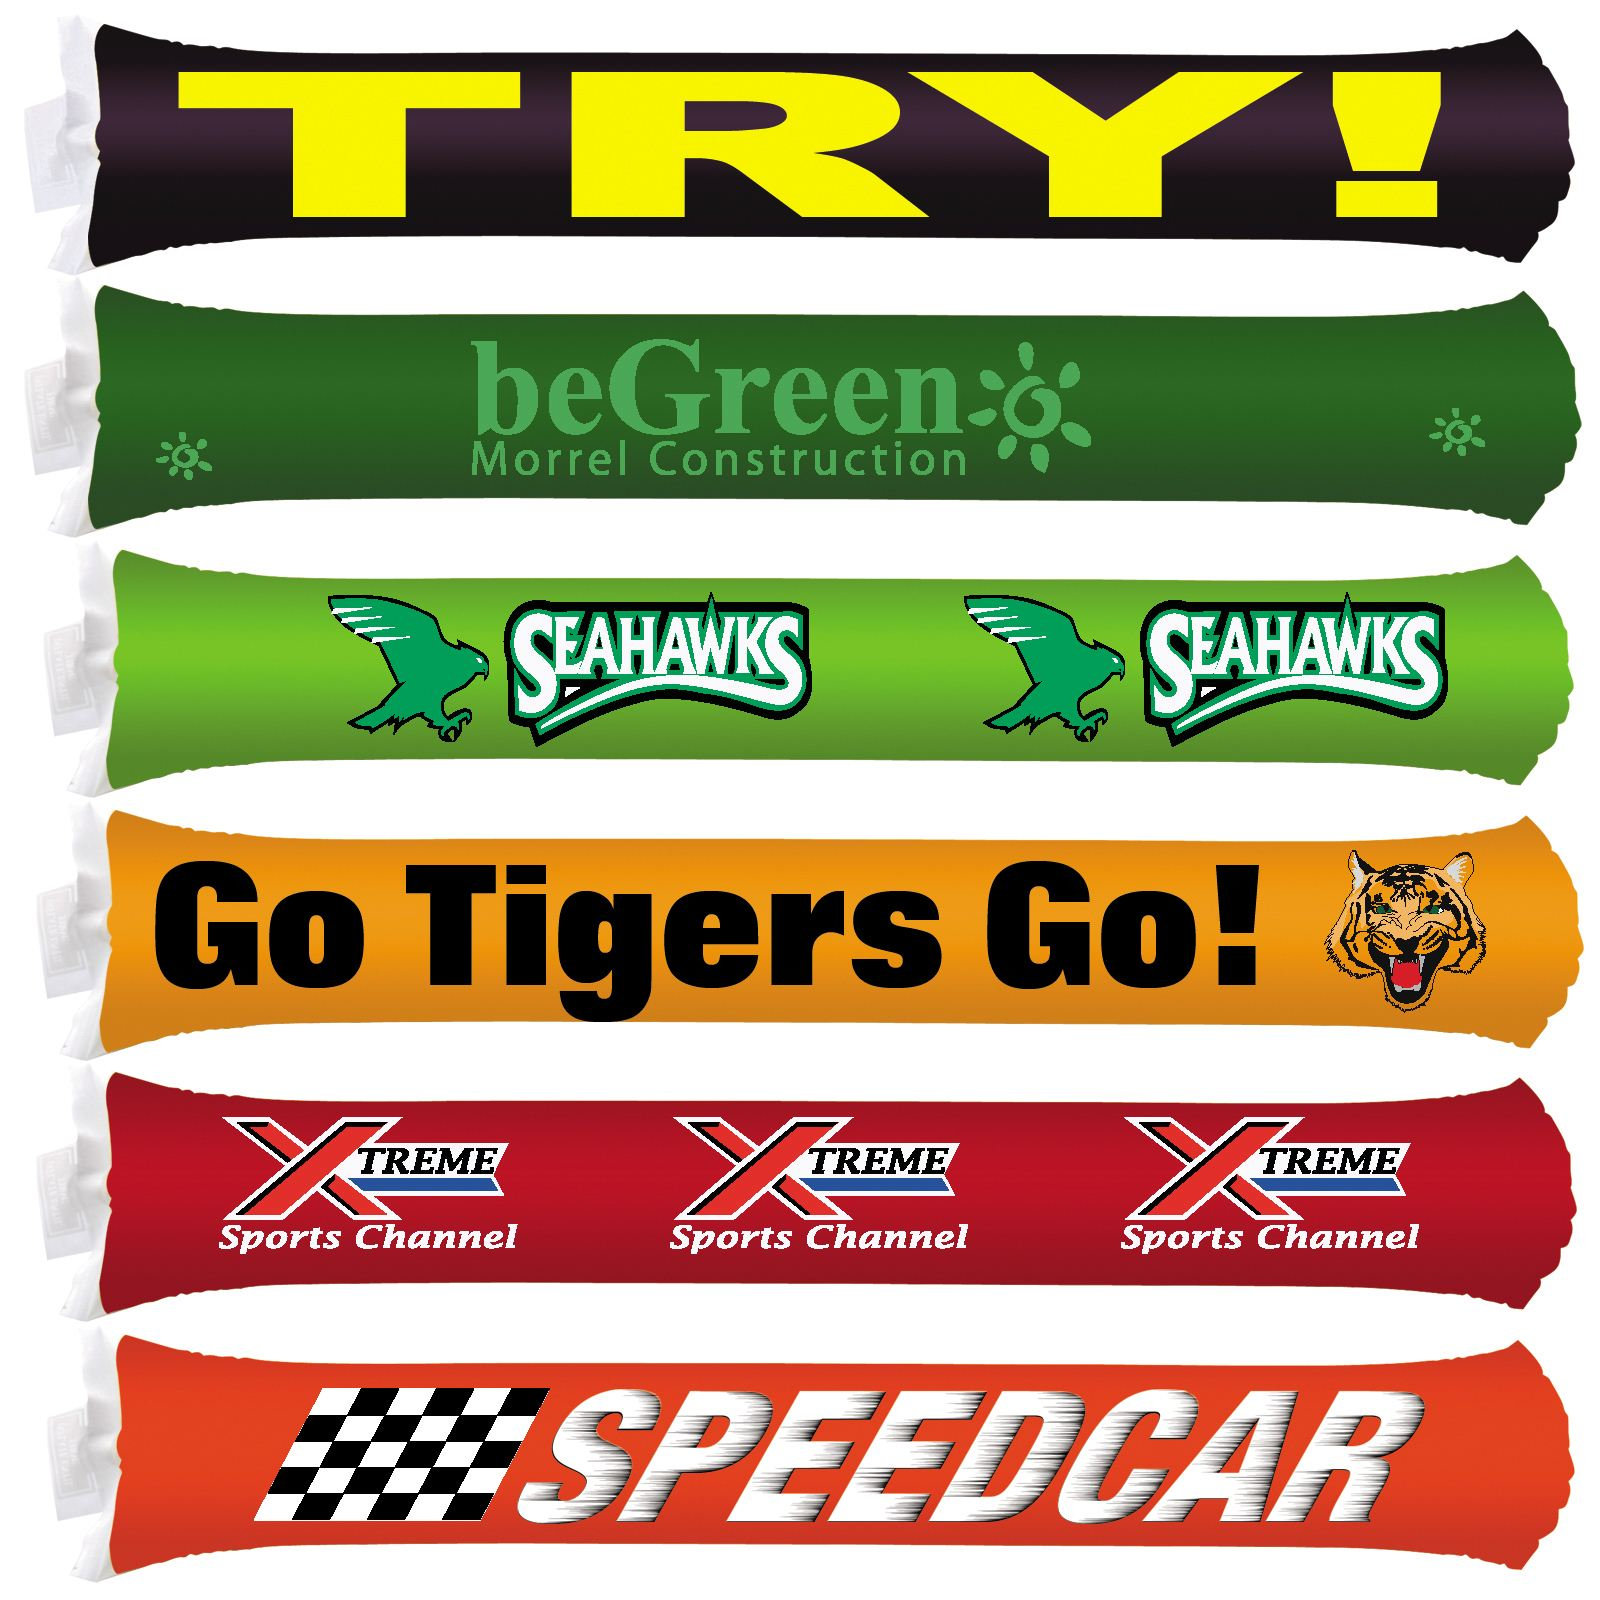 Custom Inflatable Bang Bang Sticks - Includes 1 colour in 2 locations